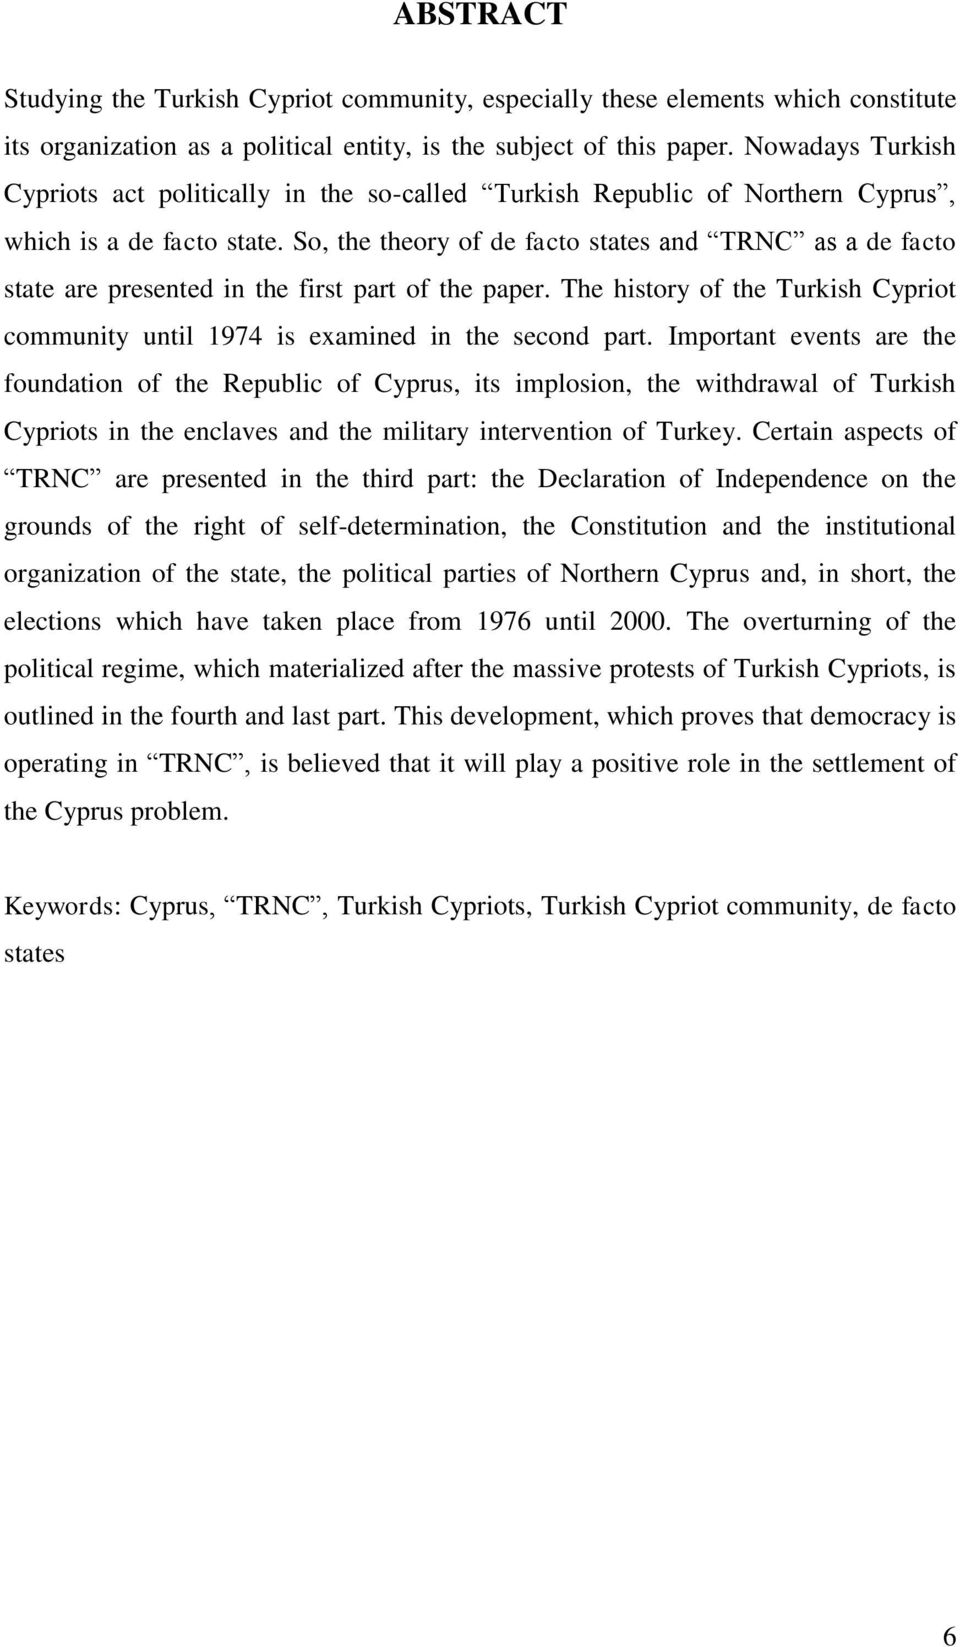 So, the theory of de facto states and TRNC as a de facto state are presented in the first part of the paper. The history of the Turkish Cypriot community until 1974 is examined in the second part.